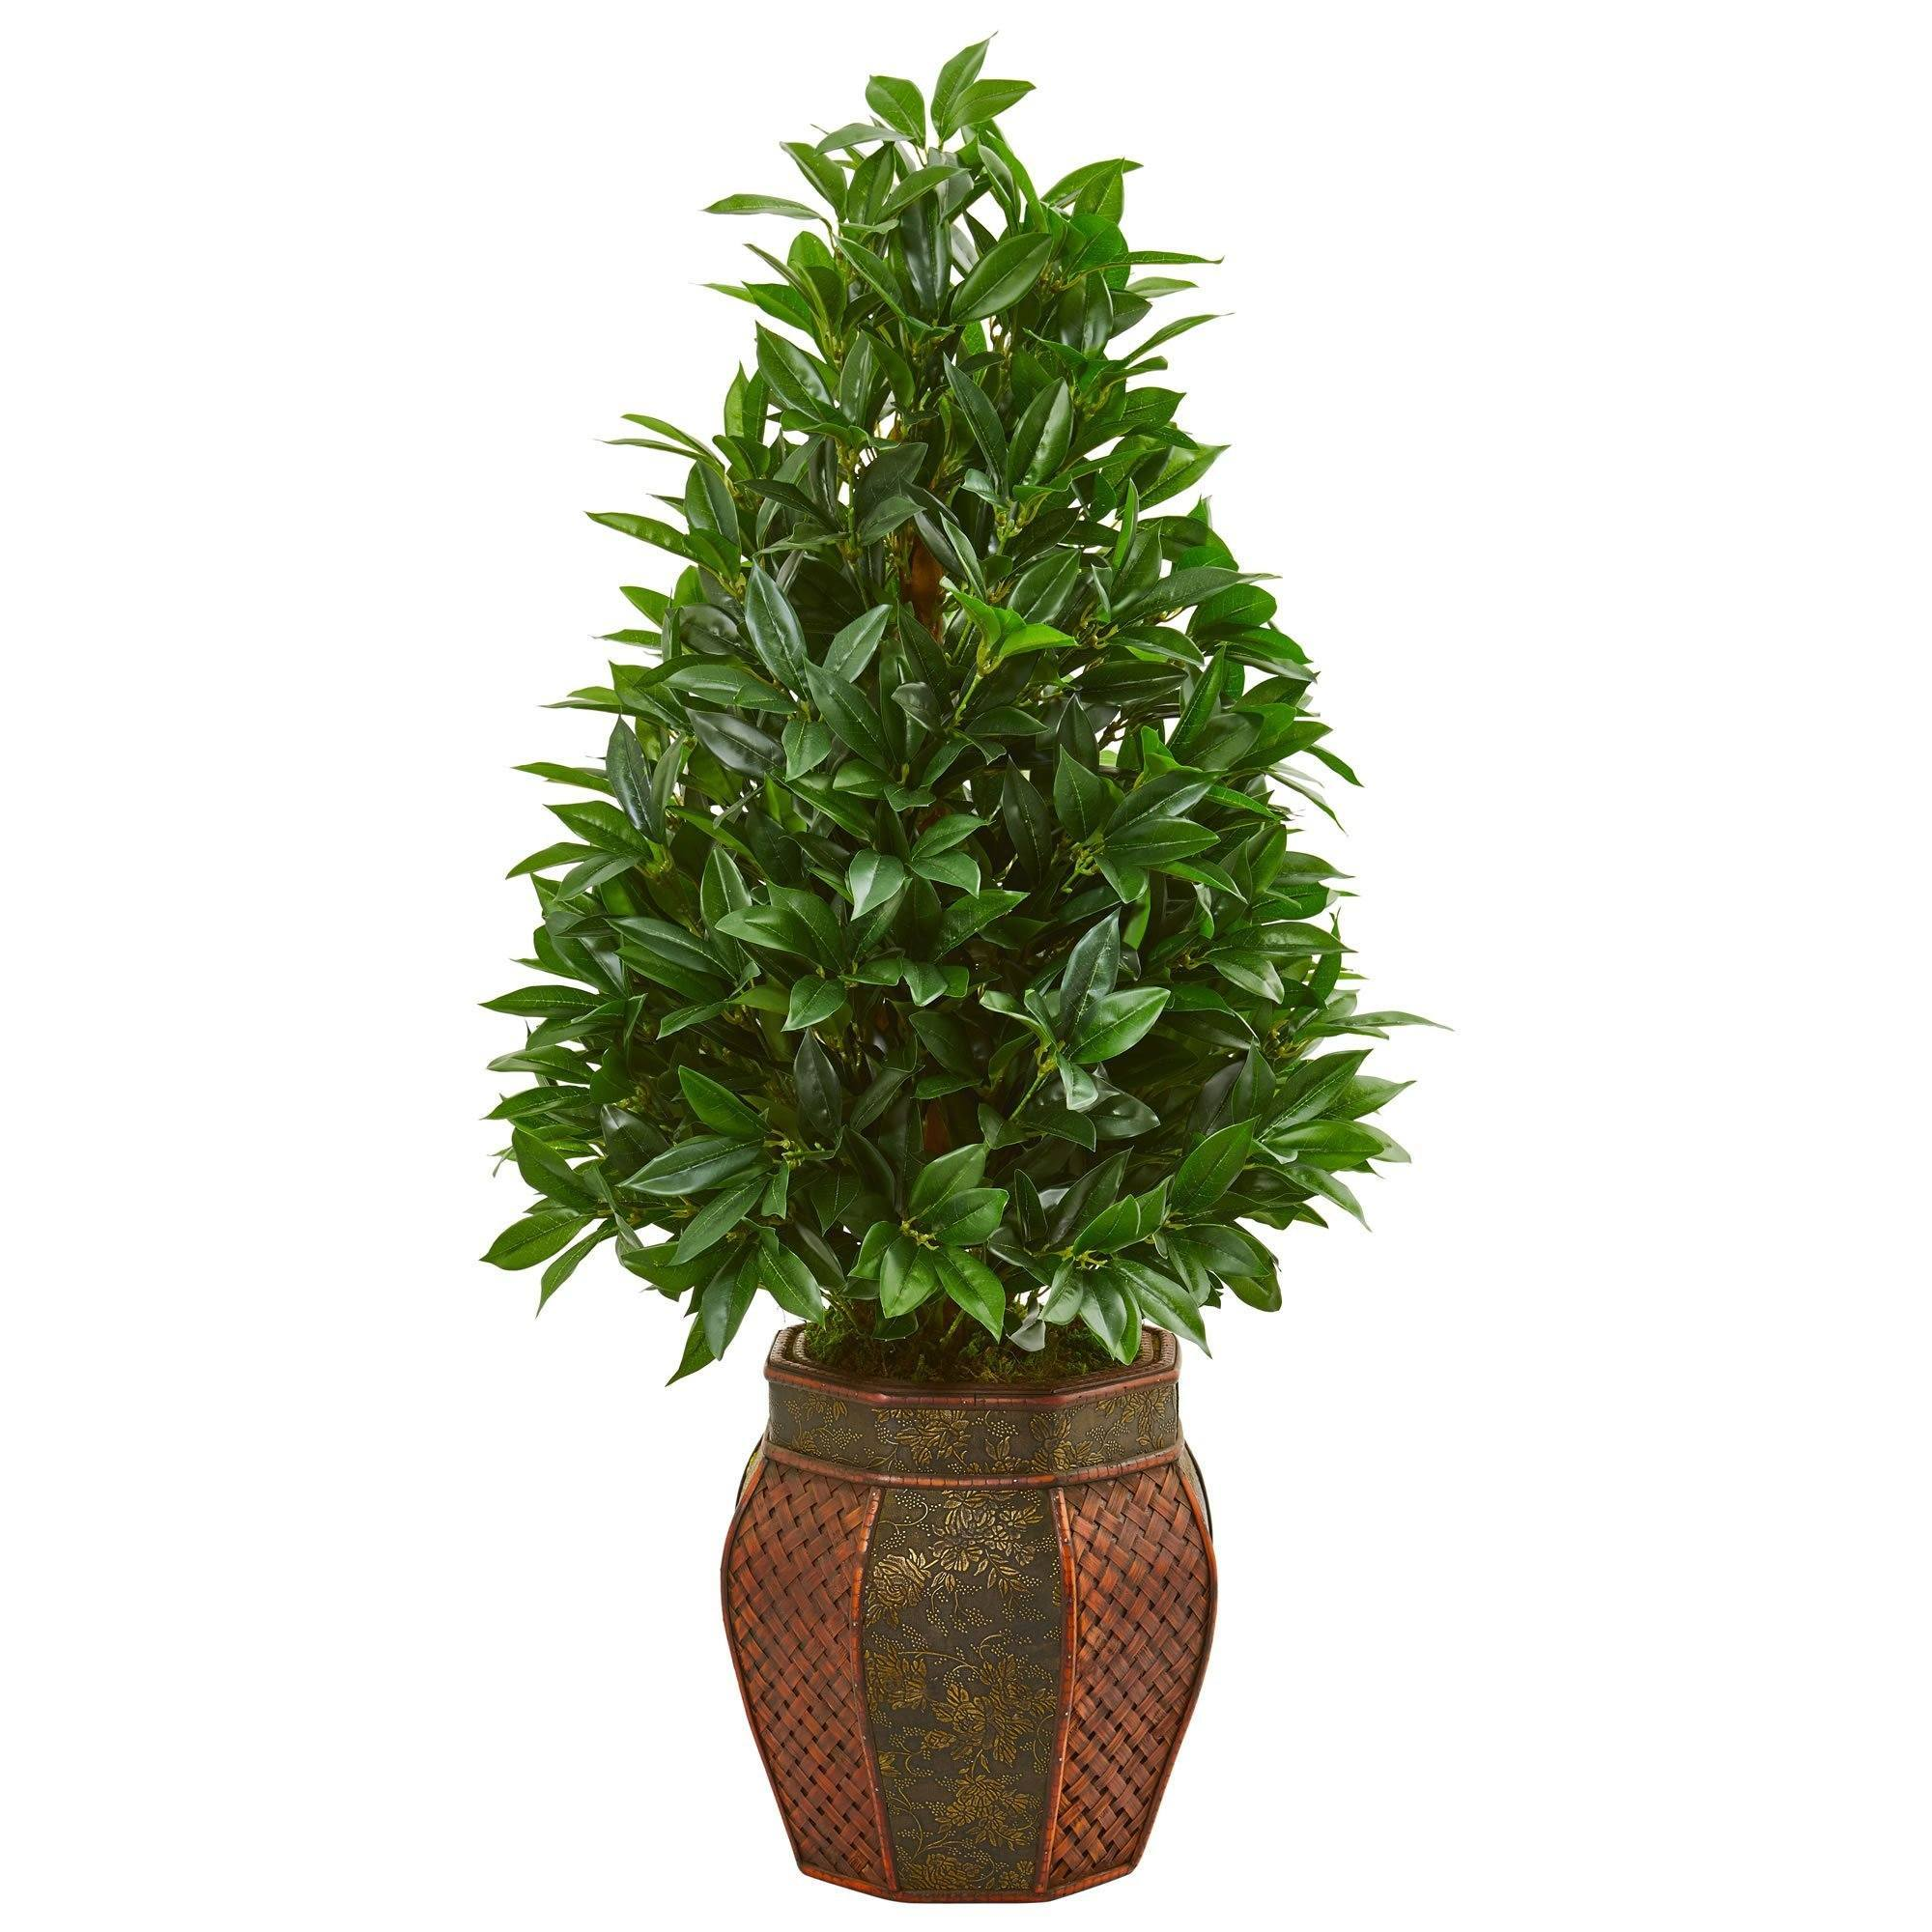 3 5 Bay Leaf Cone Topiary Artificial Tree In Decorative Planter Nearly Natural